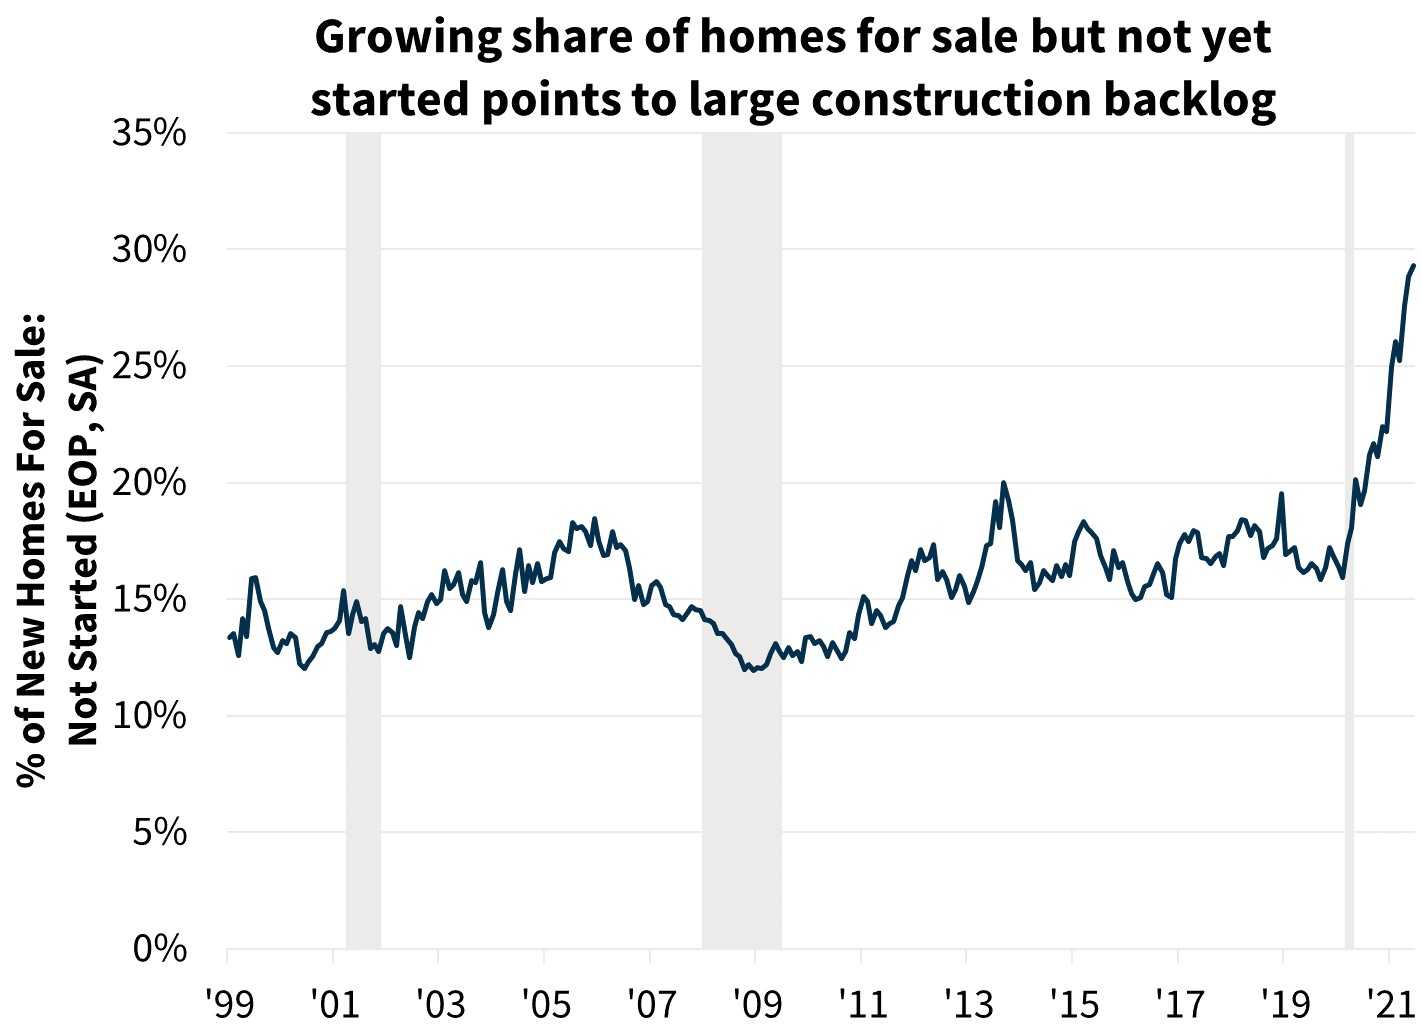 Growing share of homes for sale but not yet started points to large construction backlog